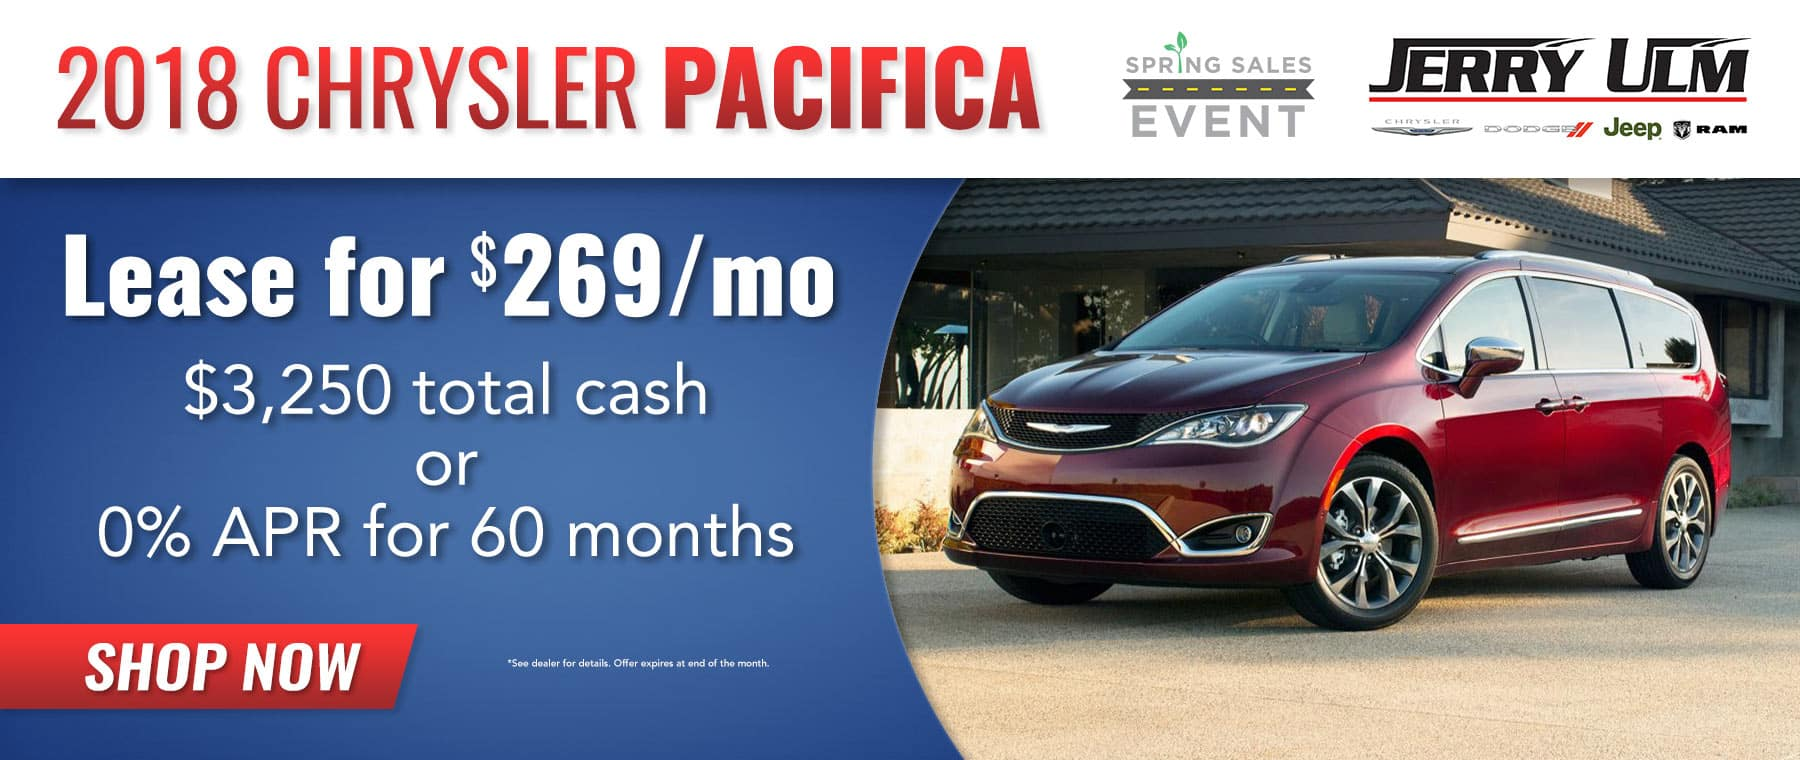 Chrysler Pacifica special